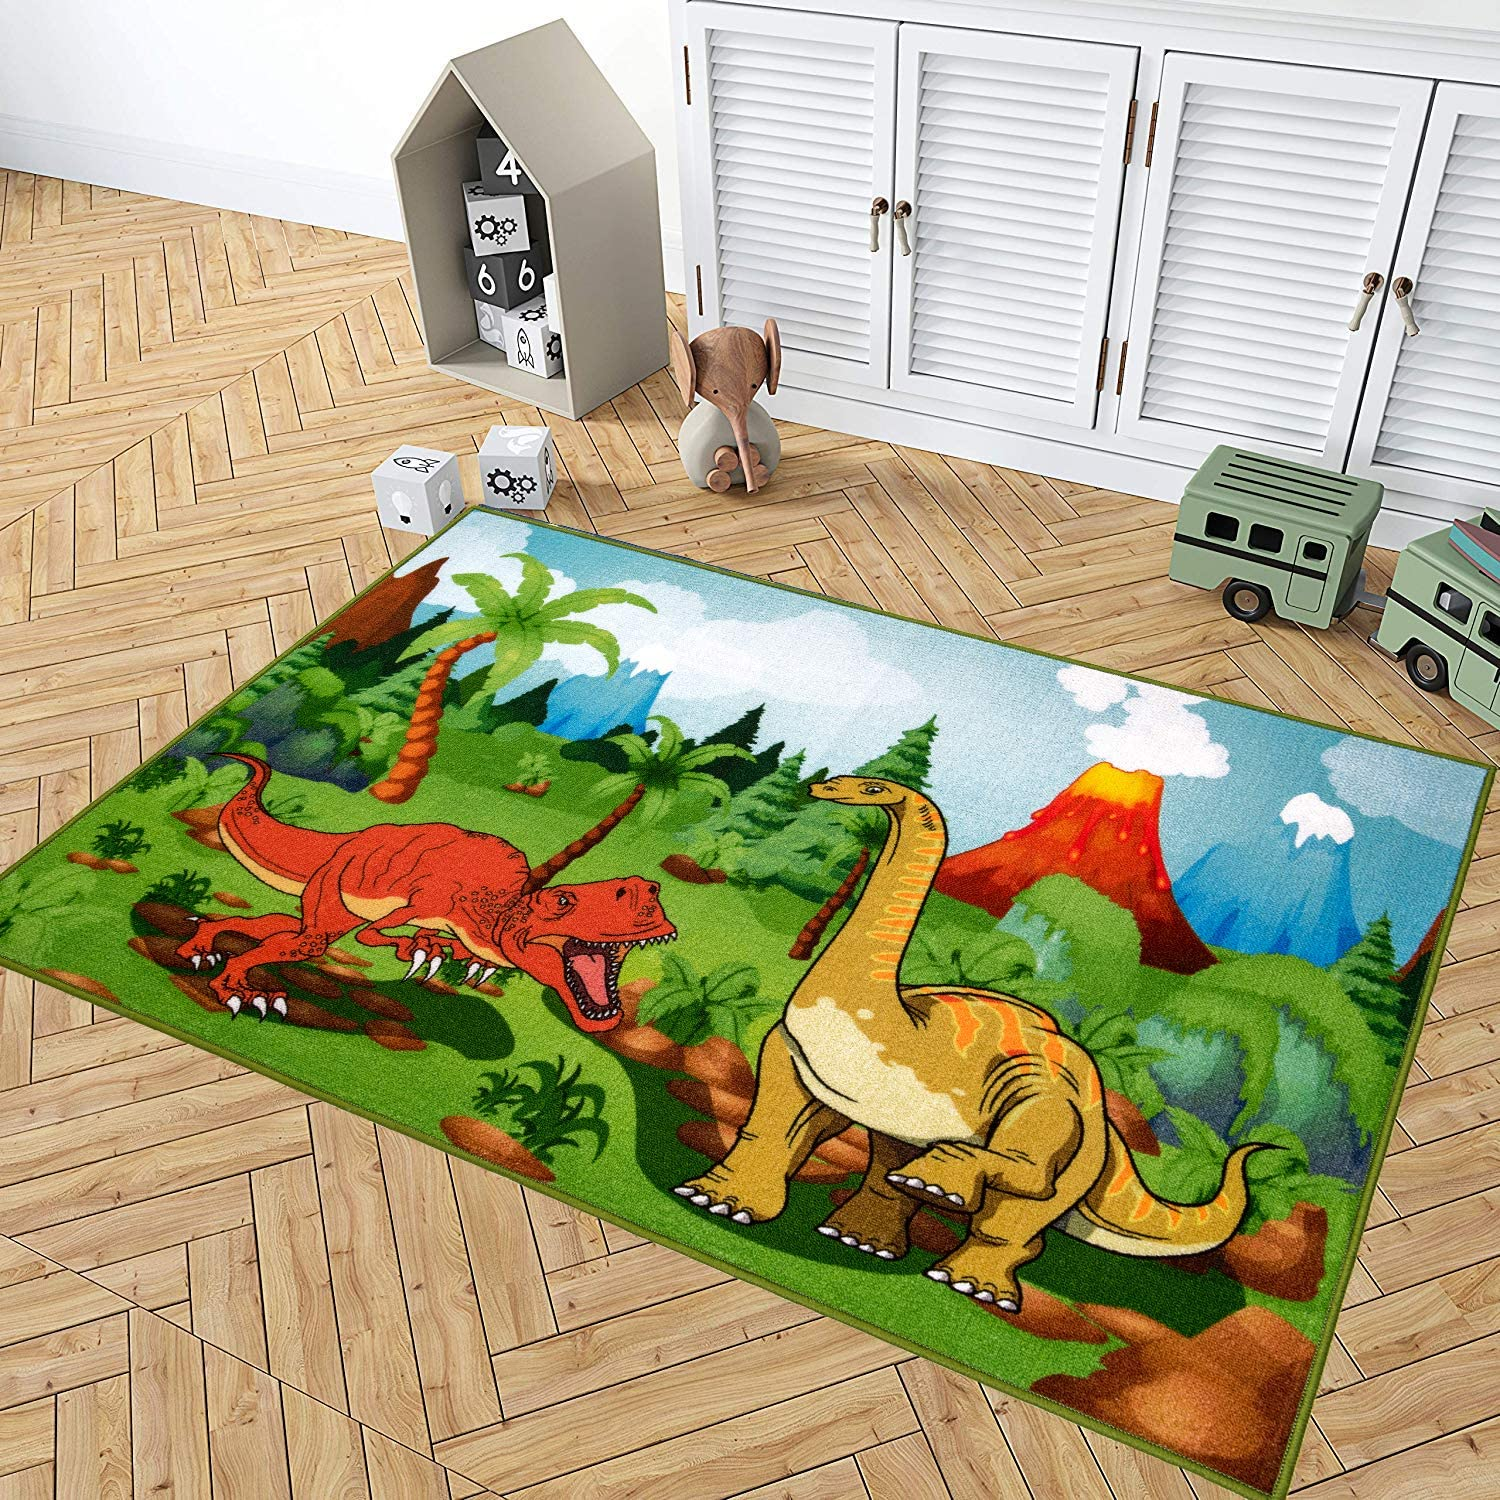 Kid Rugs Dinosaur Activity Area Rug 39 X59 Educational Learning Carpet For Boys And Girls Fun Rug Playmat For Bedroom Living Room And Gameroom Fun Play Rug For Boys And Girls Amazon Ca Home Kitchen